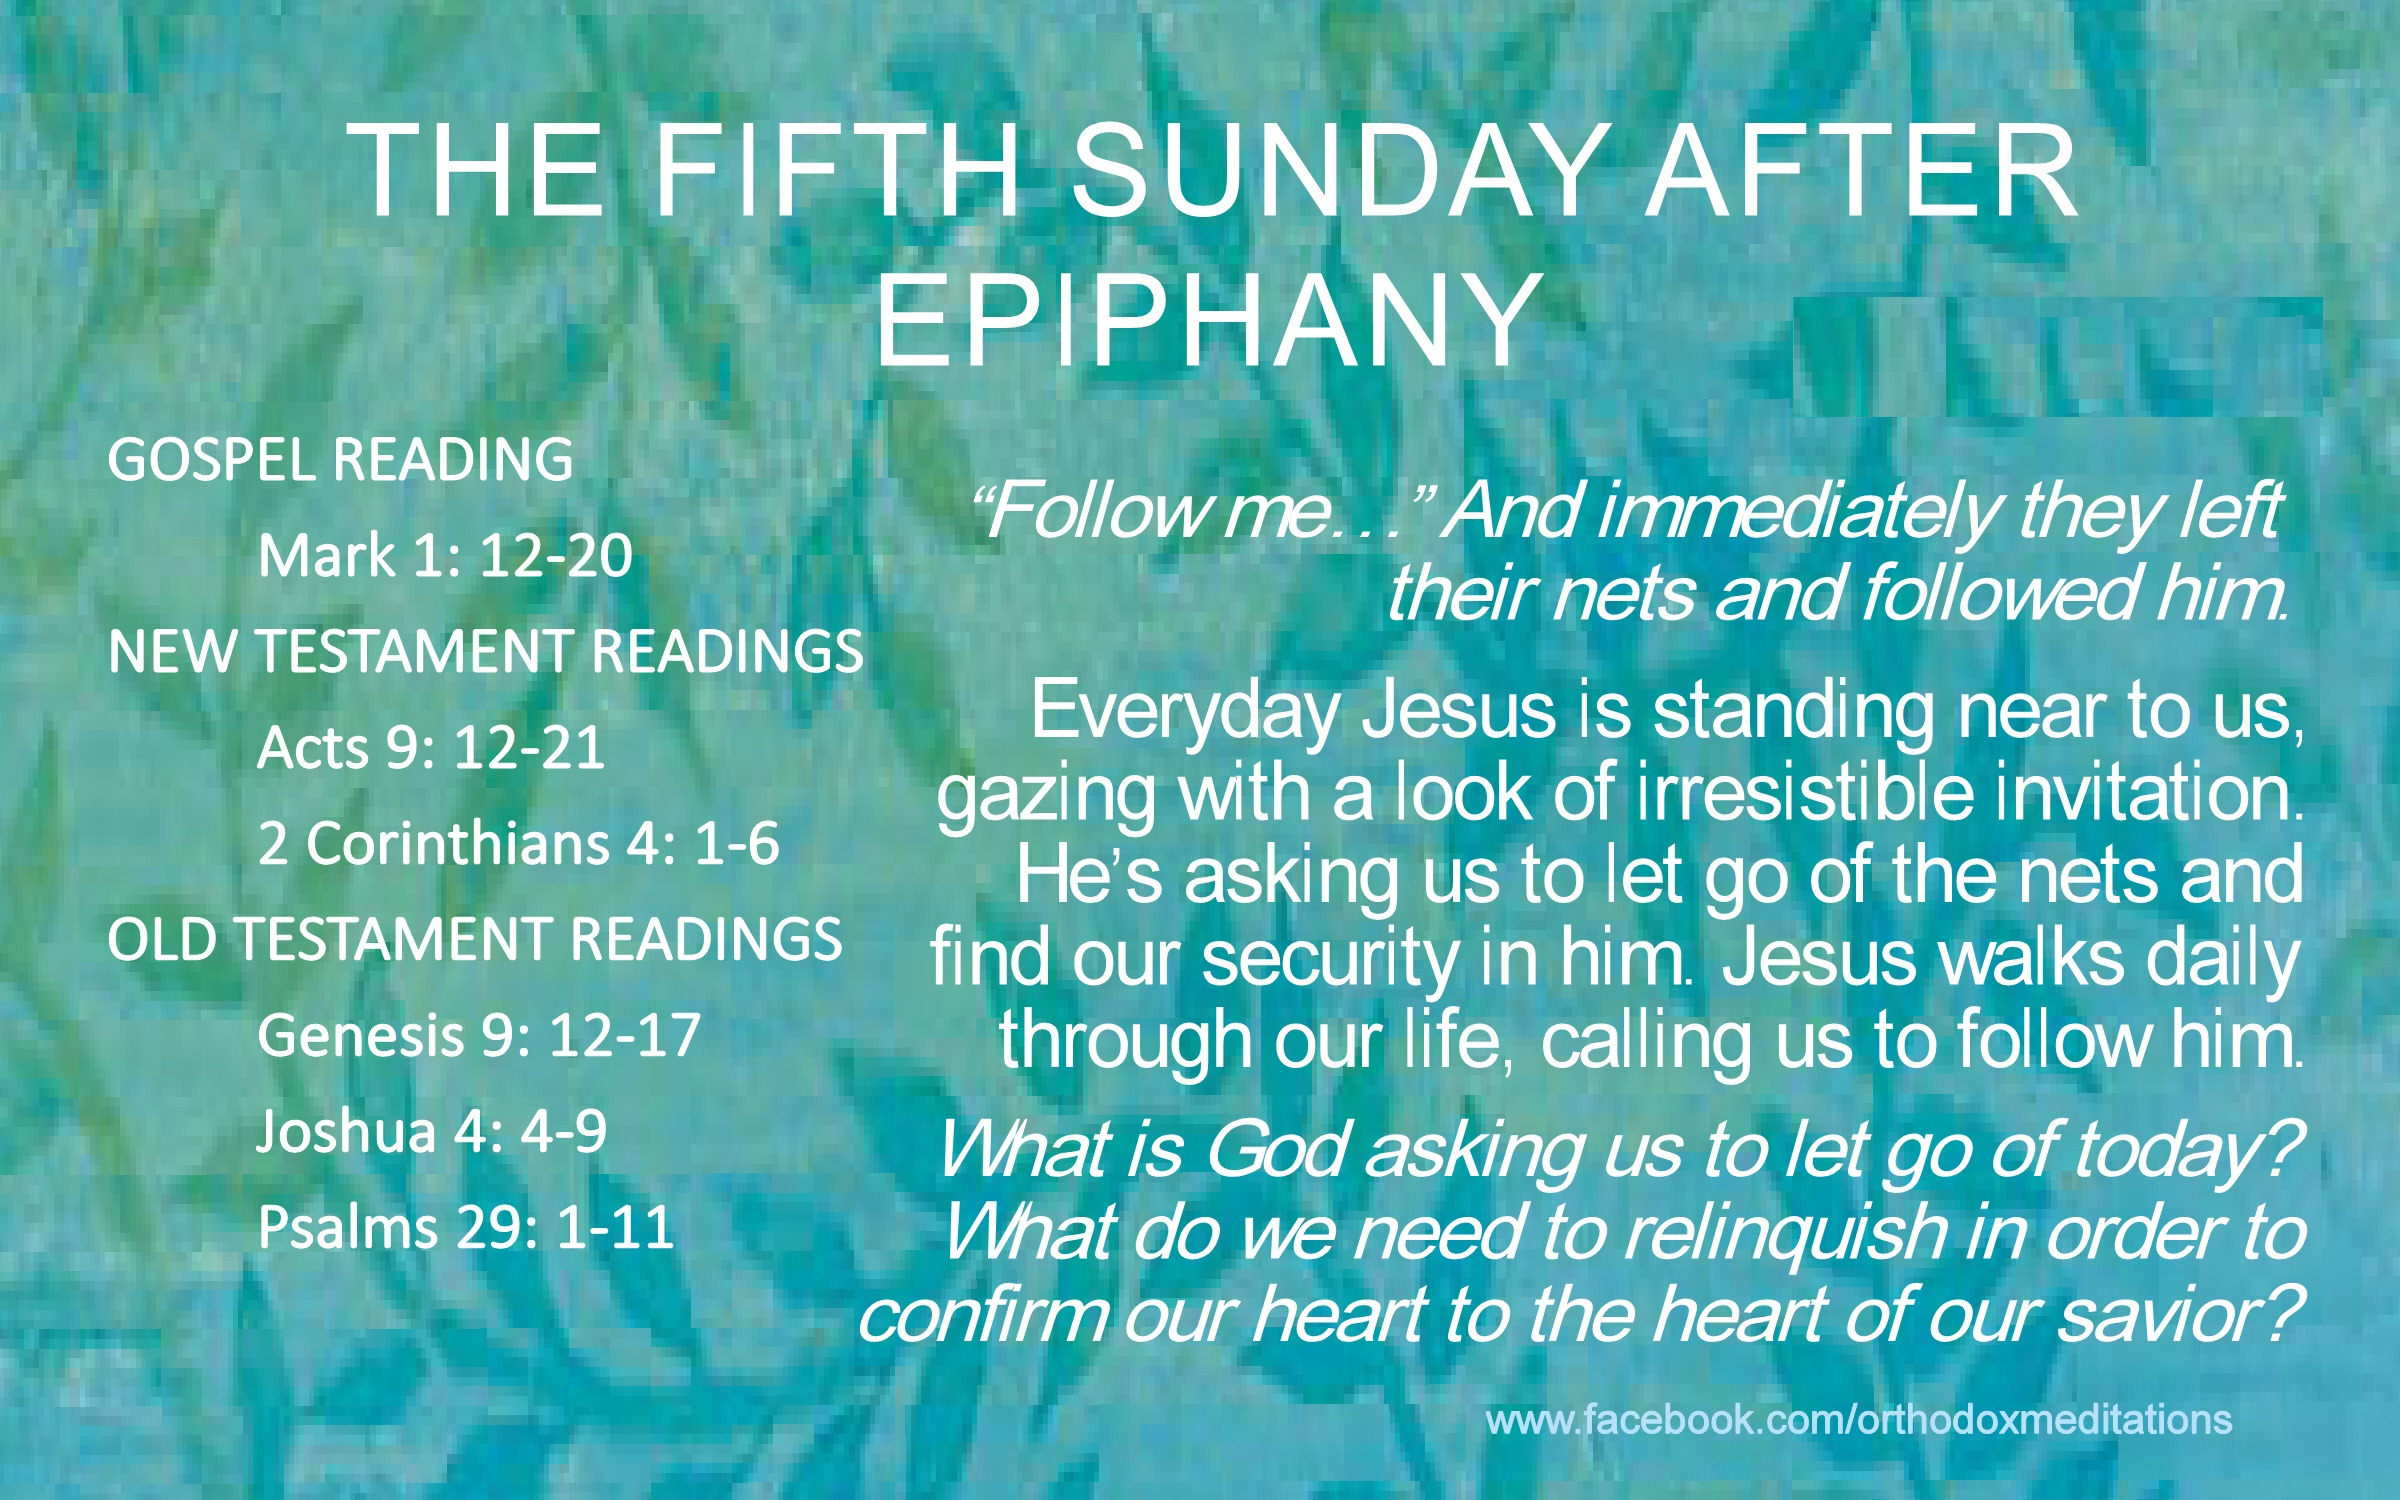 5th-sunday-after-epiphany_001